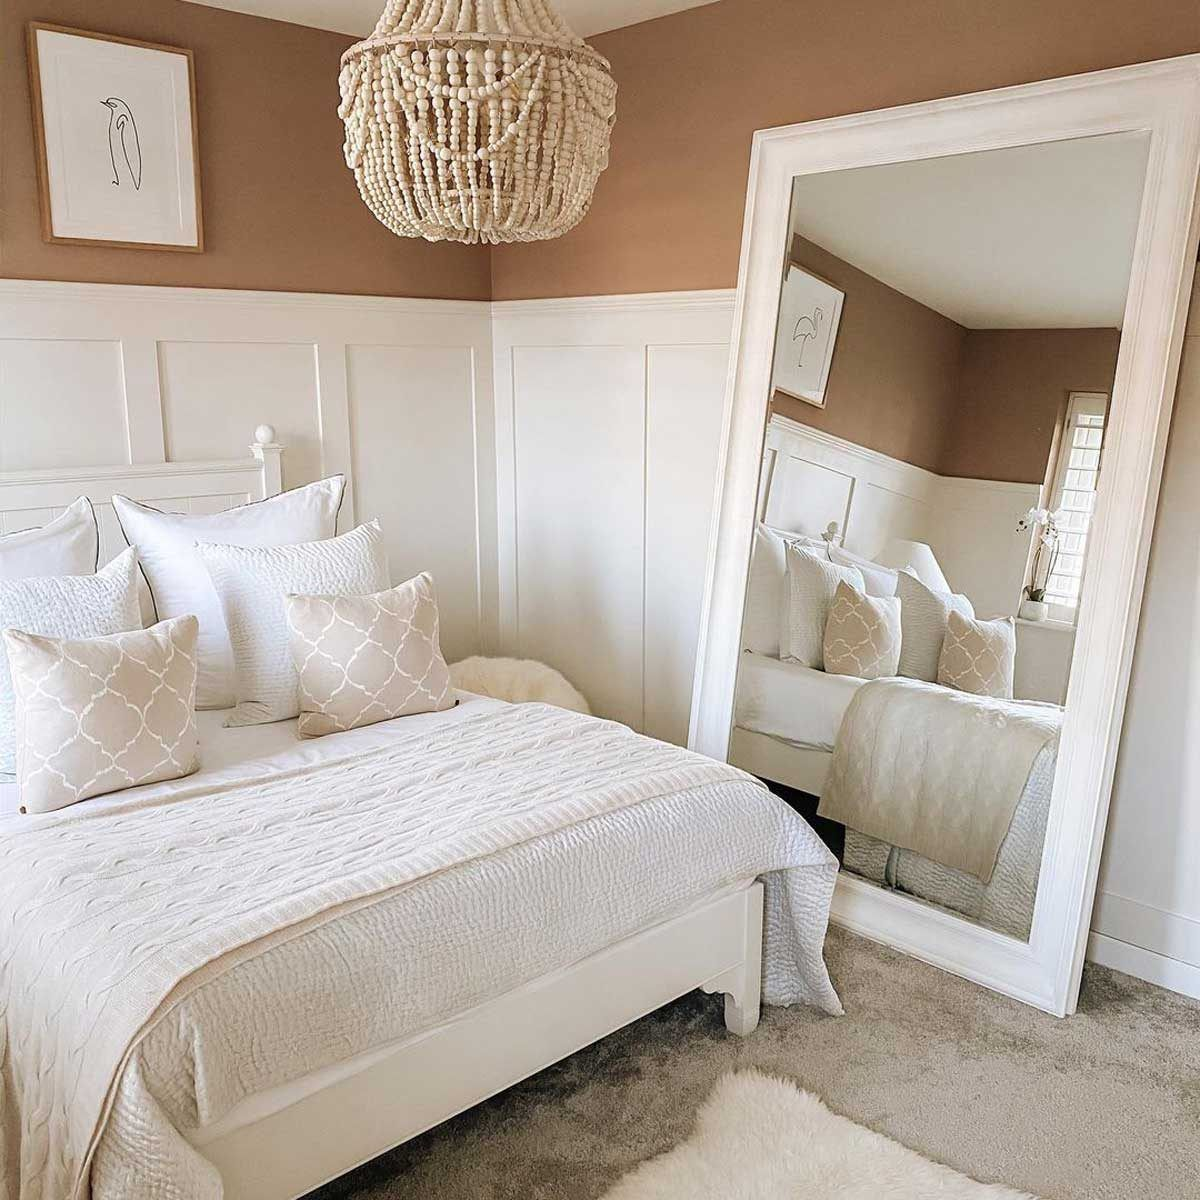 10 Small Bedroom Design Ideas In 2021 Small Guest Bedroom Small Bedroom Layout Small Bedroom Decor